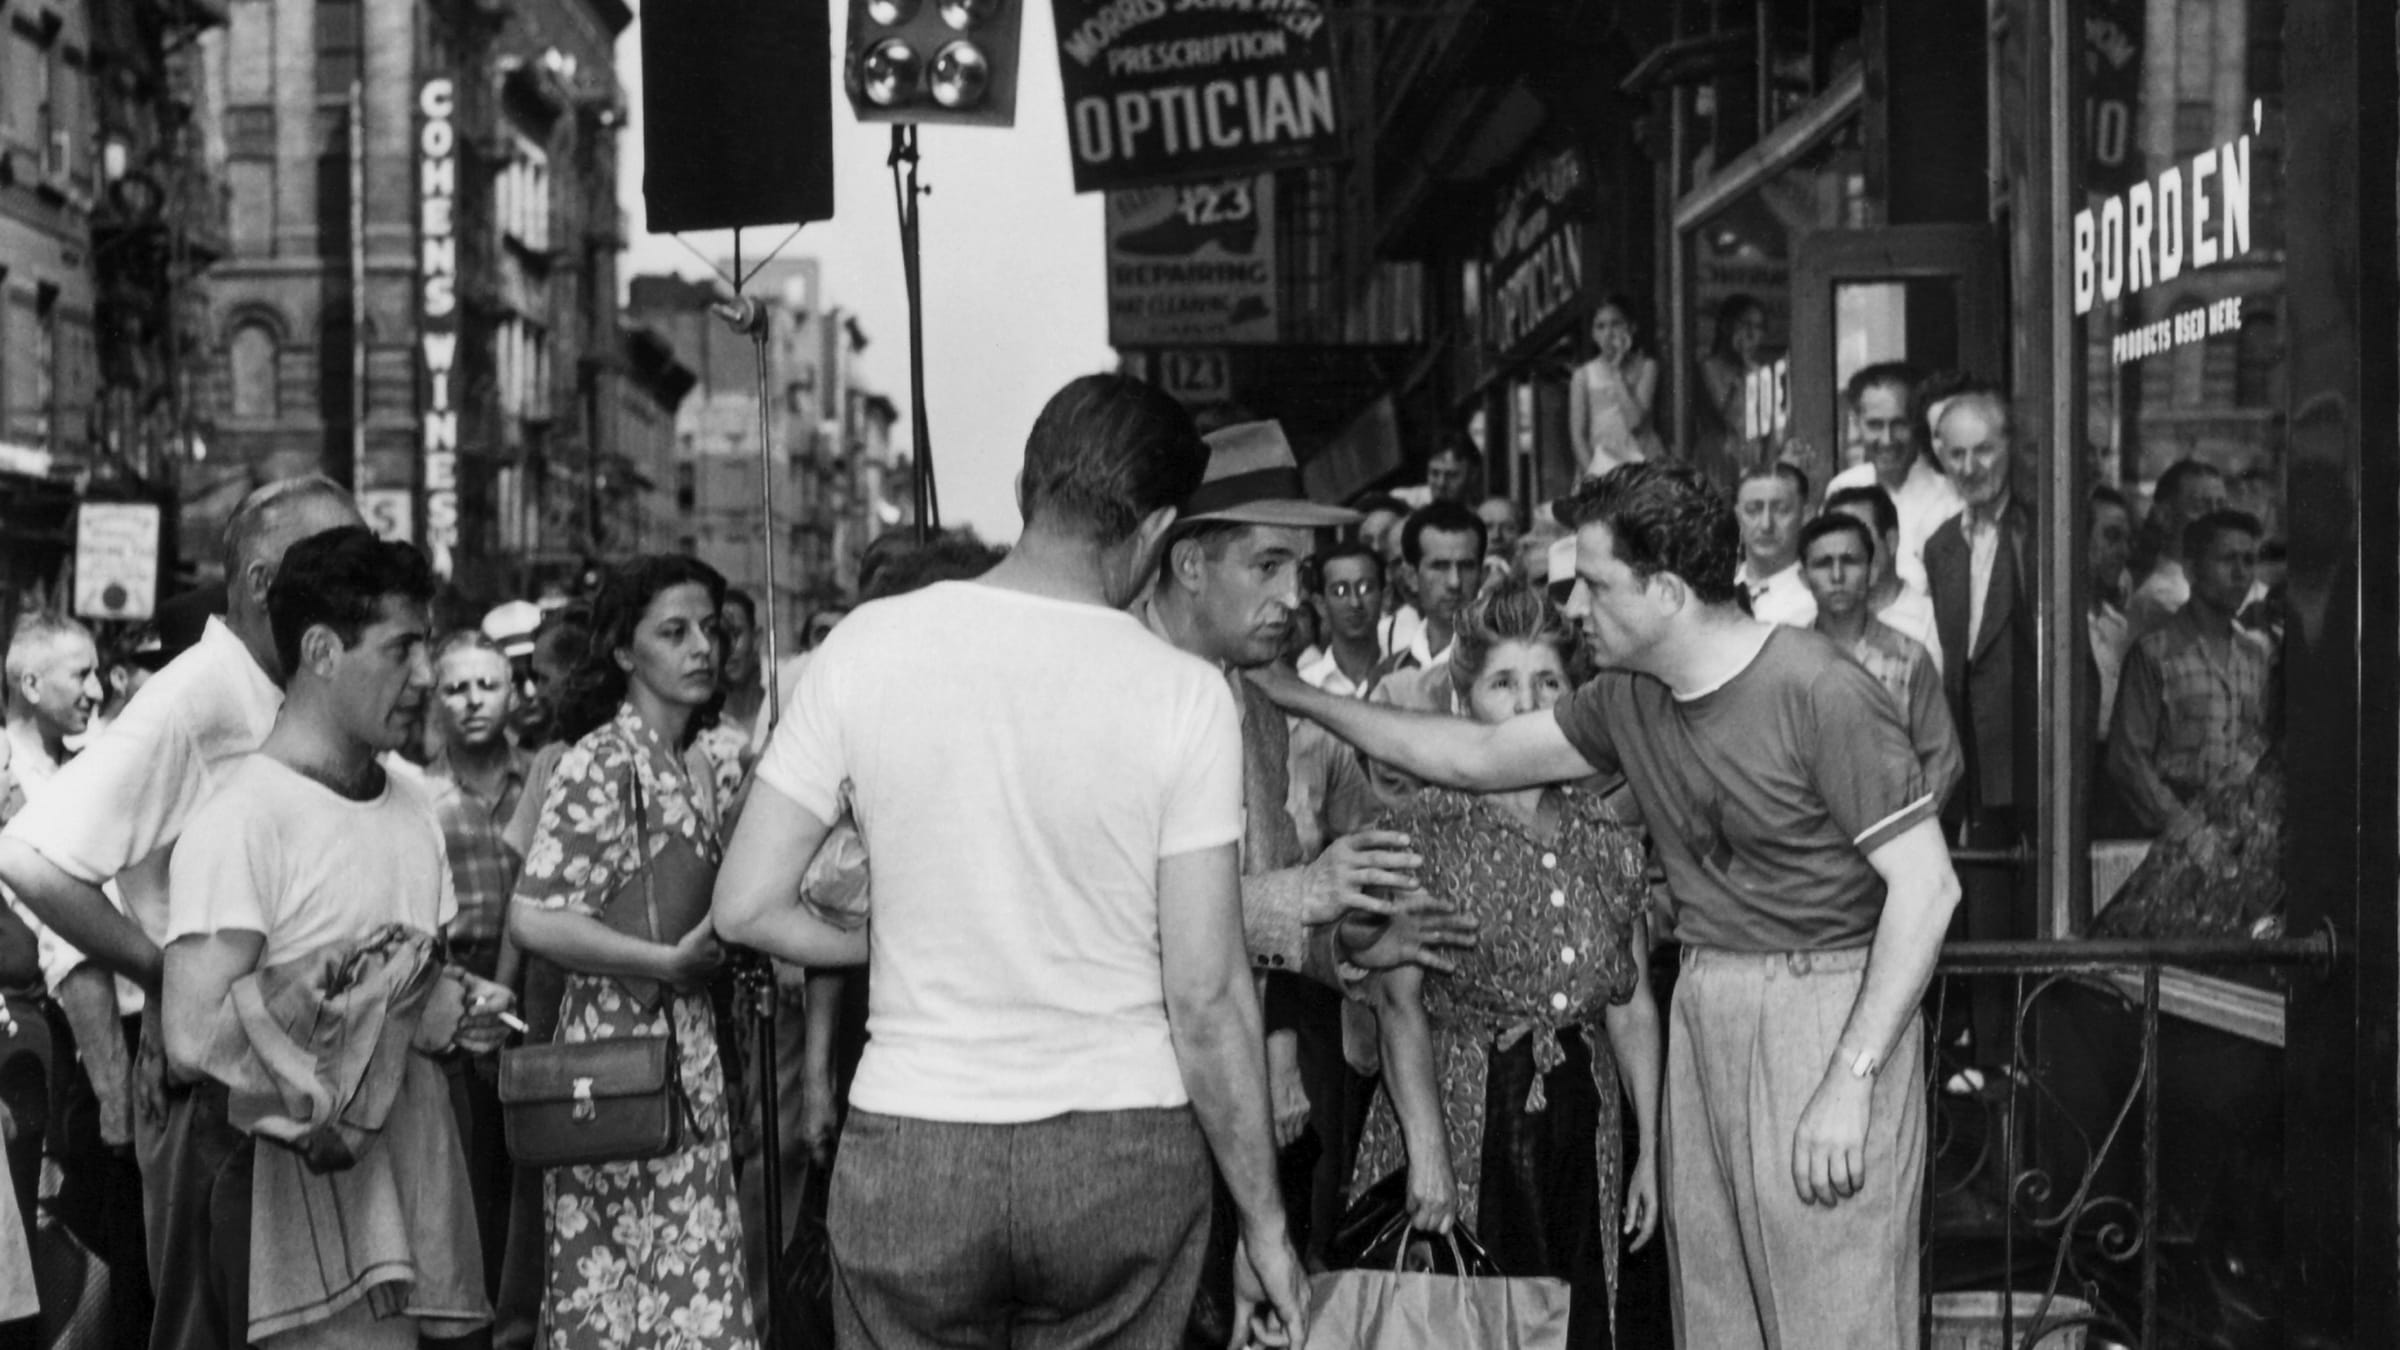 Walkers in the City: Jules Dassin and Bruce Goldstein in New York